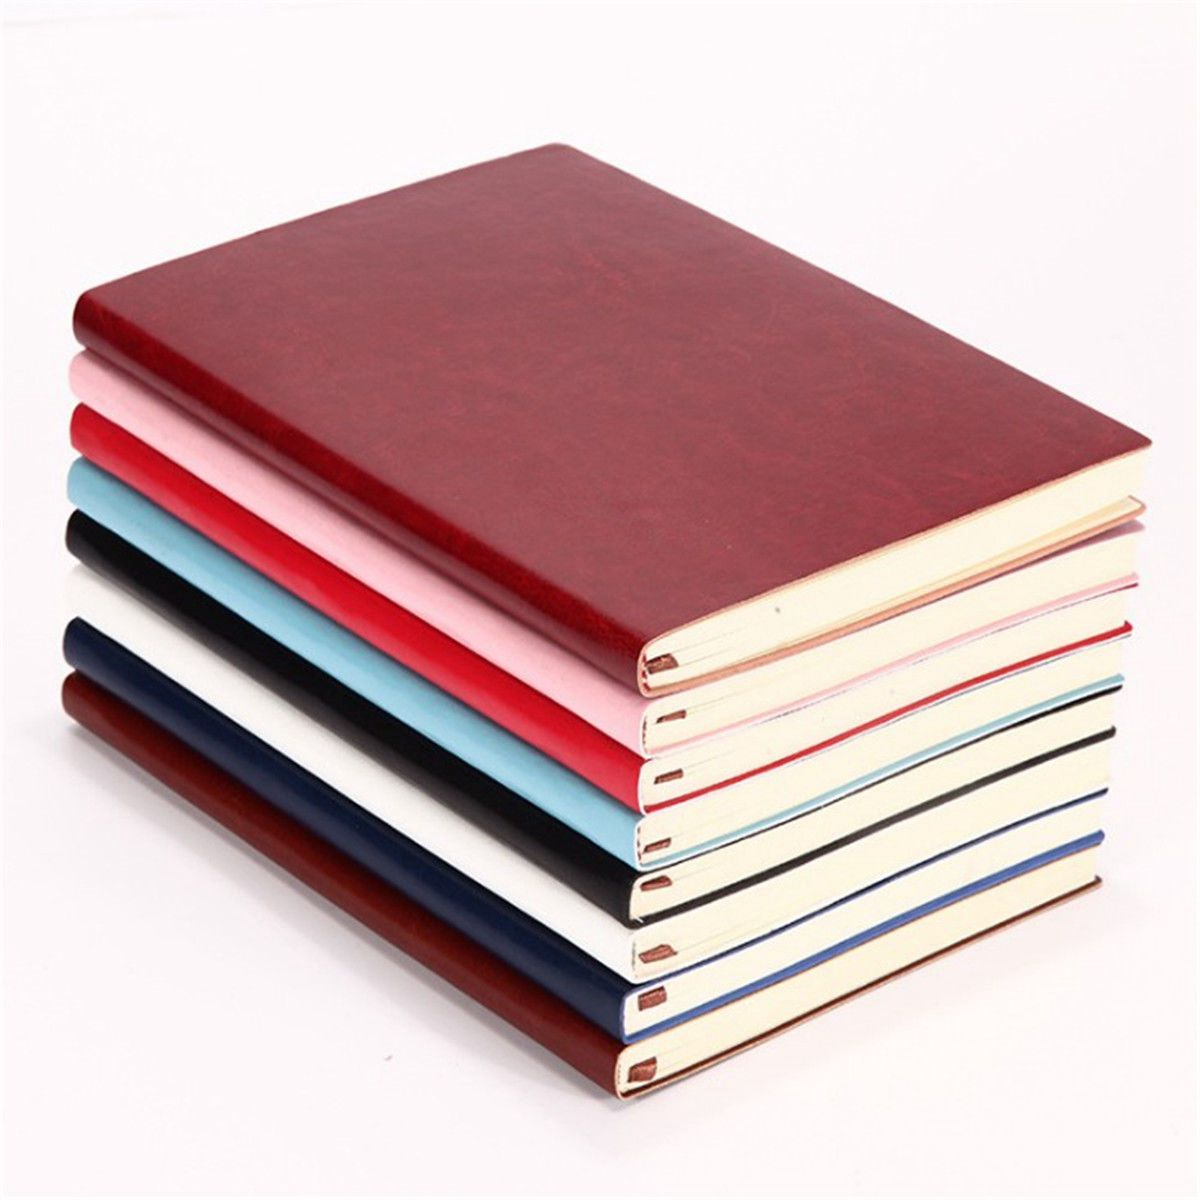 6 Color Random Soft Cover PU Leather Notebook Writing Journal 100 Page Lined Diary Book fm1701 sop20 page 6